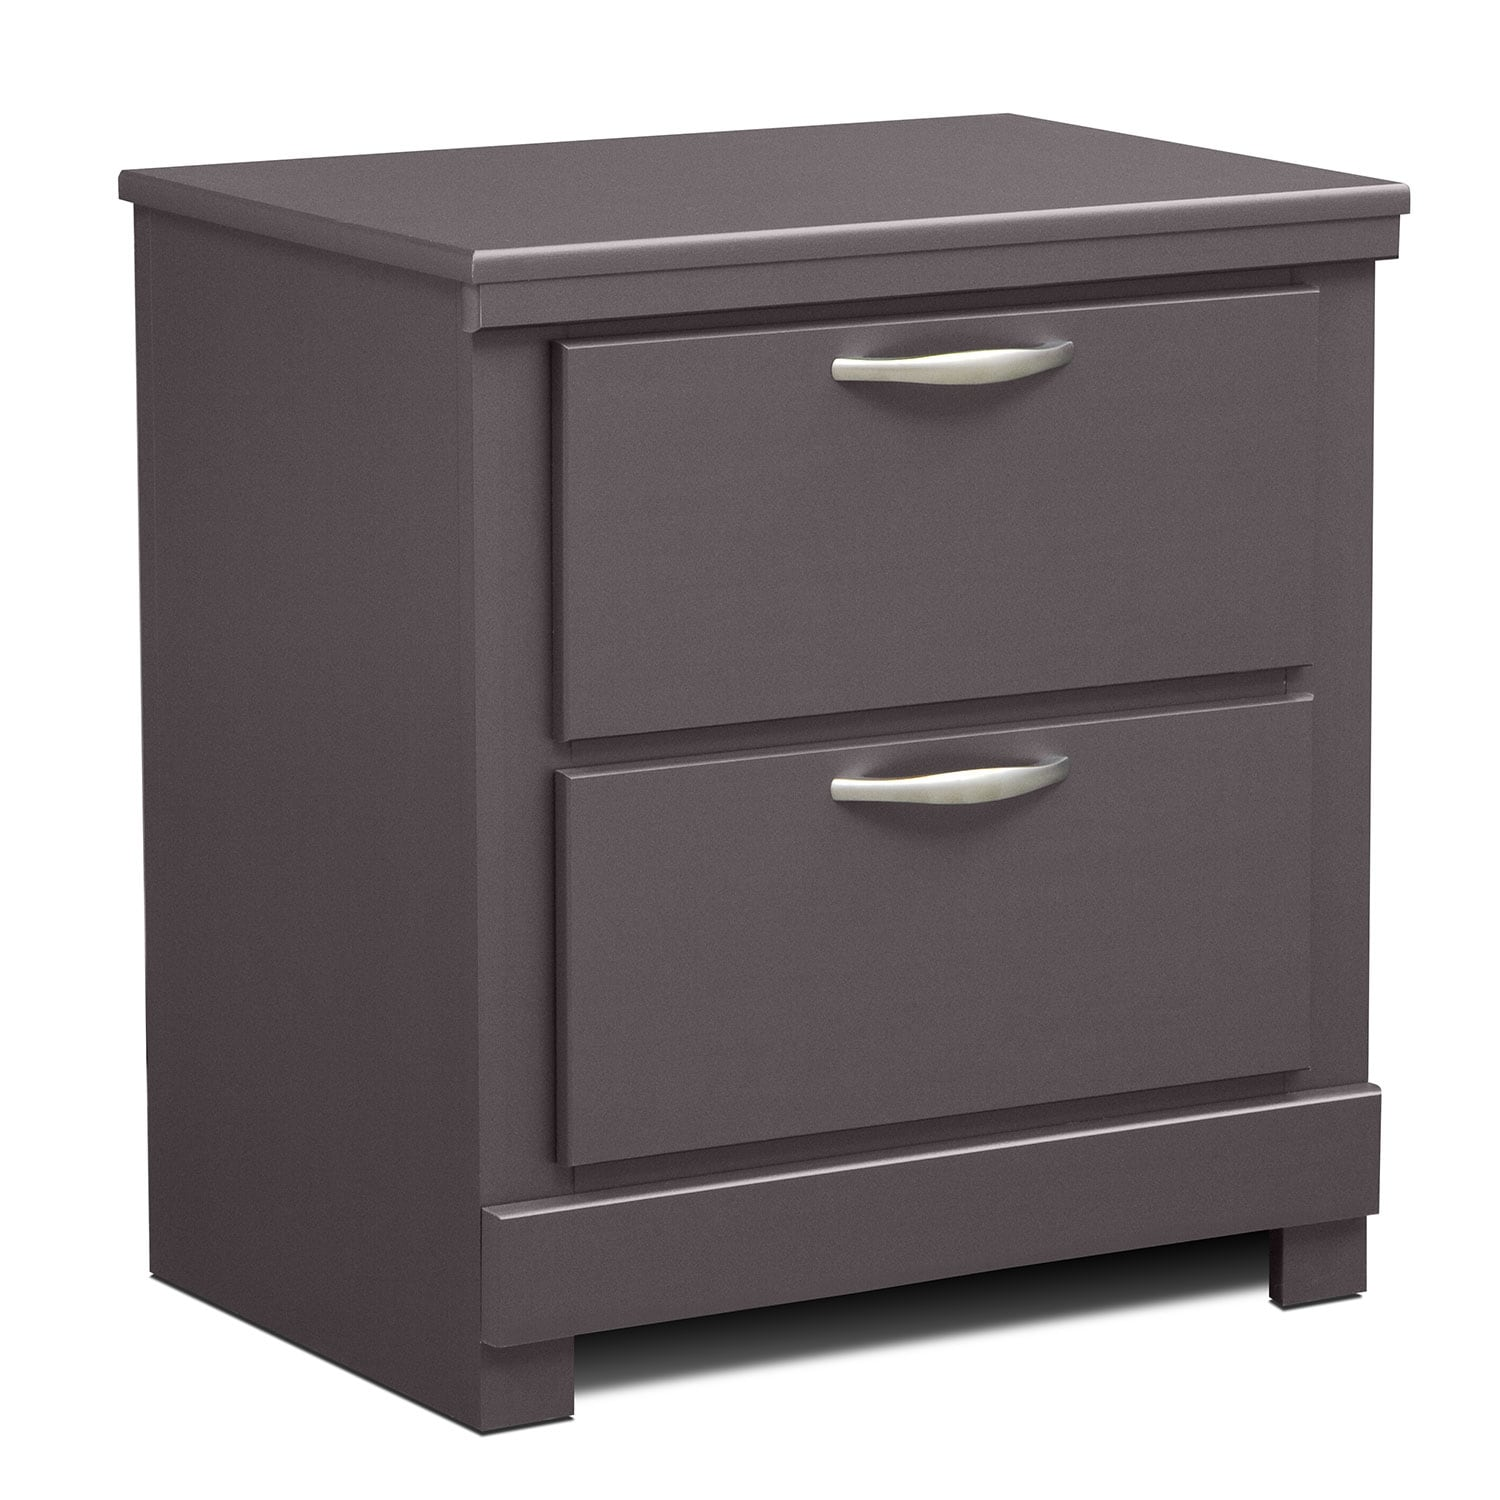 Kids Furniture - Combi Nightstand - Gunmetal